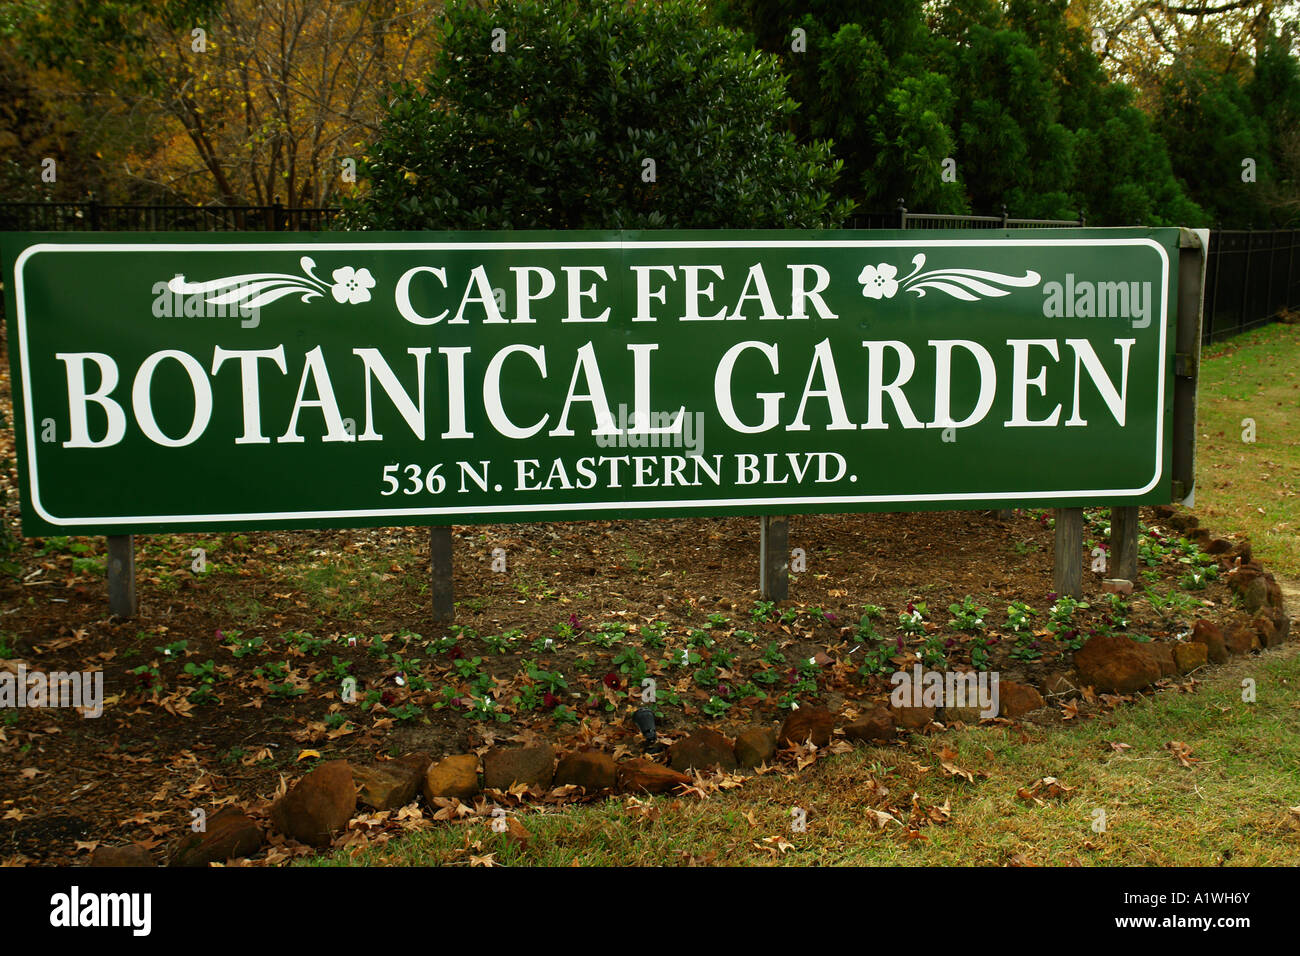 AJD54622, Fayetteville, NC, North Carolina, Cape Fear Botanical ...